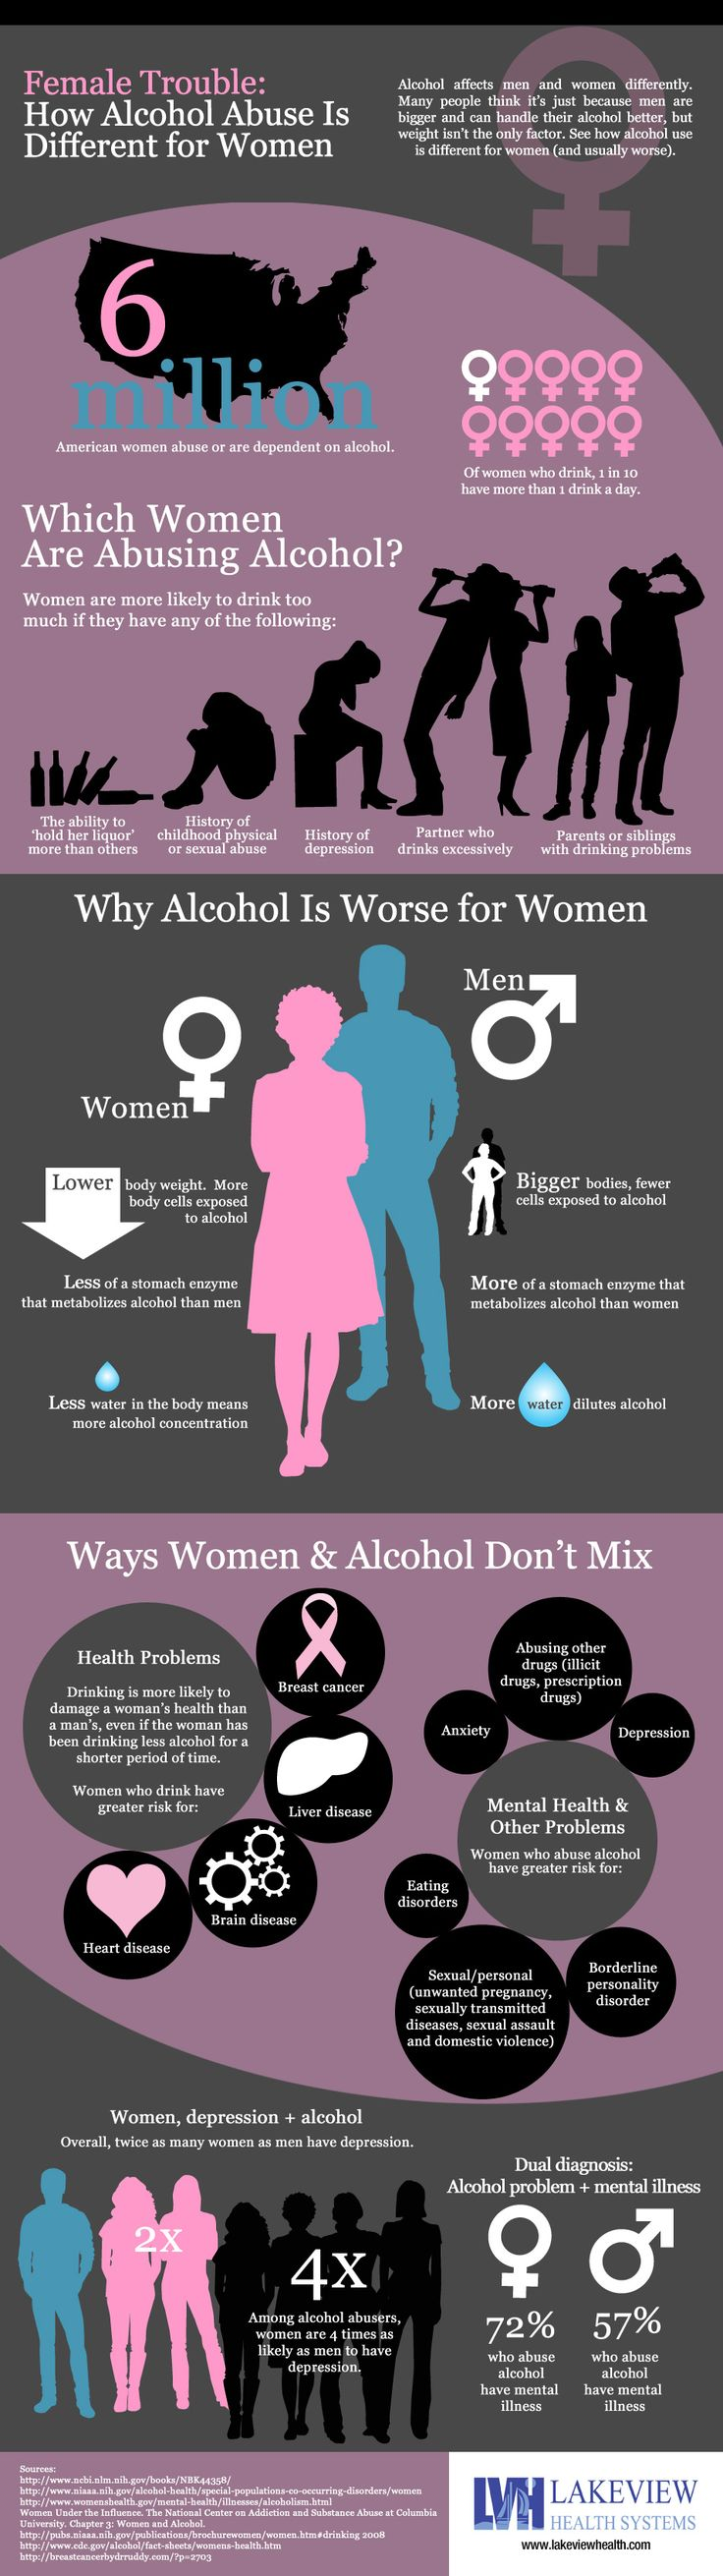 Why Alcohol Abuse is Different for Women #alcoholism #women #alcoholabuse